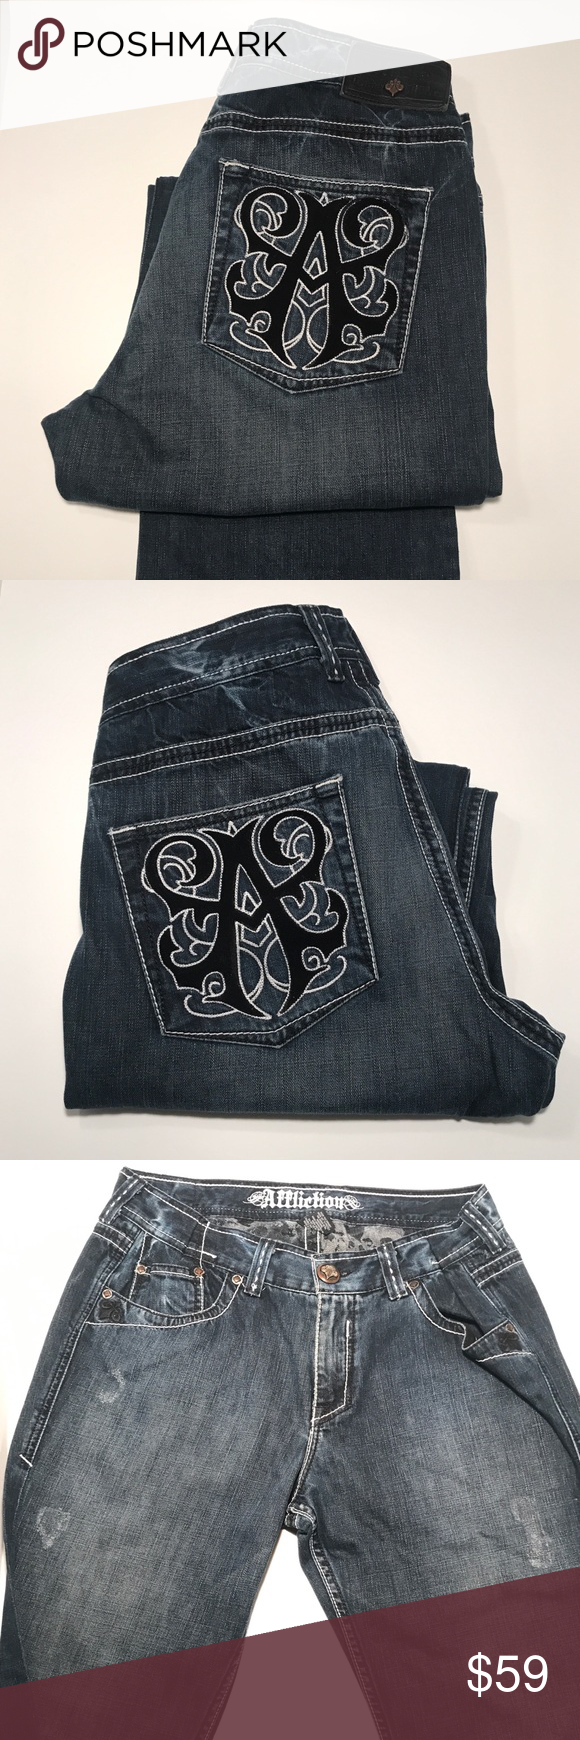 Affliction Denim Killer Jeans Fleur De Lis Pockets My Posh Closet